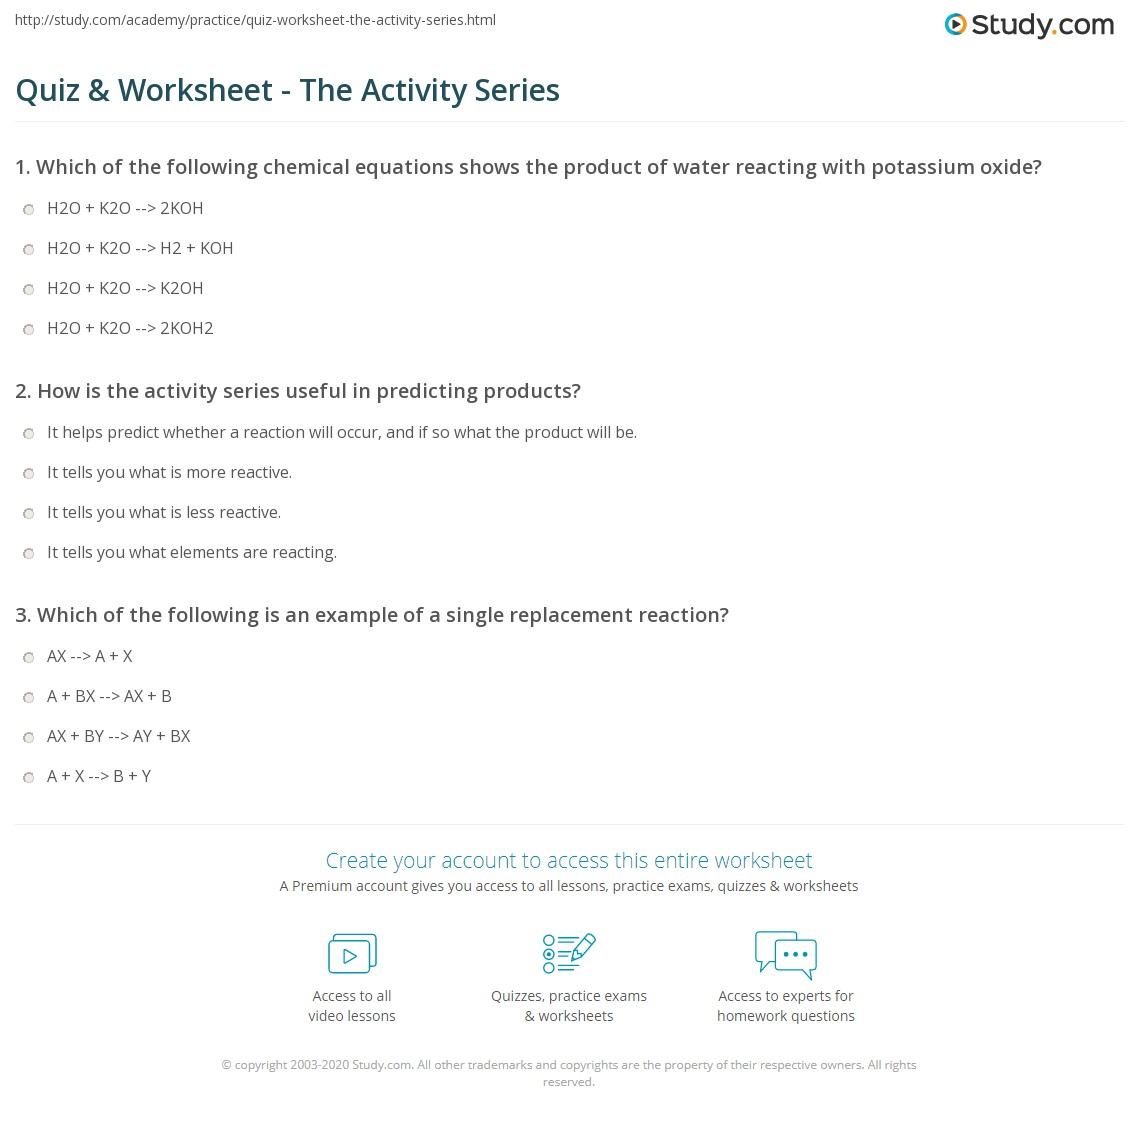 Aldiablosus  Pretty Quiz Amp Worksheet  The Activity Series  Studycom With Handsome Print The Activity Series Predicting Products Of Single Displacement Reactions Worksheet With Comely Maths For  Year Olds Worksheets Also Printable Reading Comprehension Worksheets For Nd Grade In Addition Free Excel Worksheets Download And Counting On Math Worksheets As Well As Mathematics Division Worksheets Additionally Where Animals Live Worksheet From Studycom With Aldiablosus  Handsome Quiz Amp Worksheet  The Activity Series  Studycom With Comely Print The Activity Series Predicting Products Of Single Displacement Reactions Worksheet And Pretty Maths For  Year Olds Worksheets Also Printable Reading Comprehension Worksheets For Nd Grade In Addition Free Excel Worksheets Download From Studycom